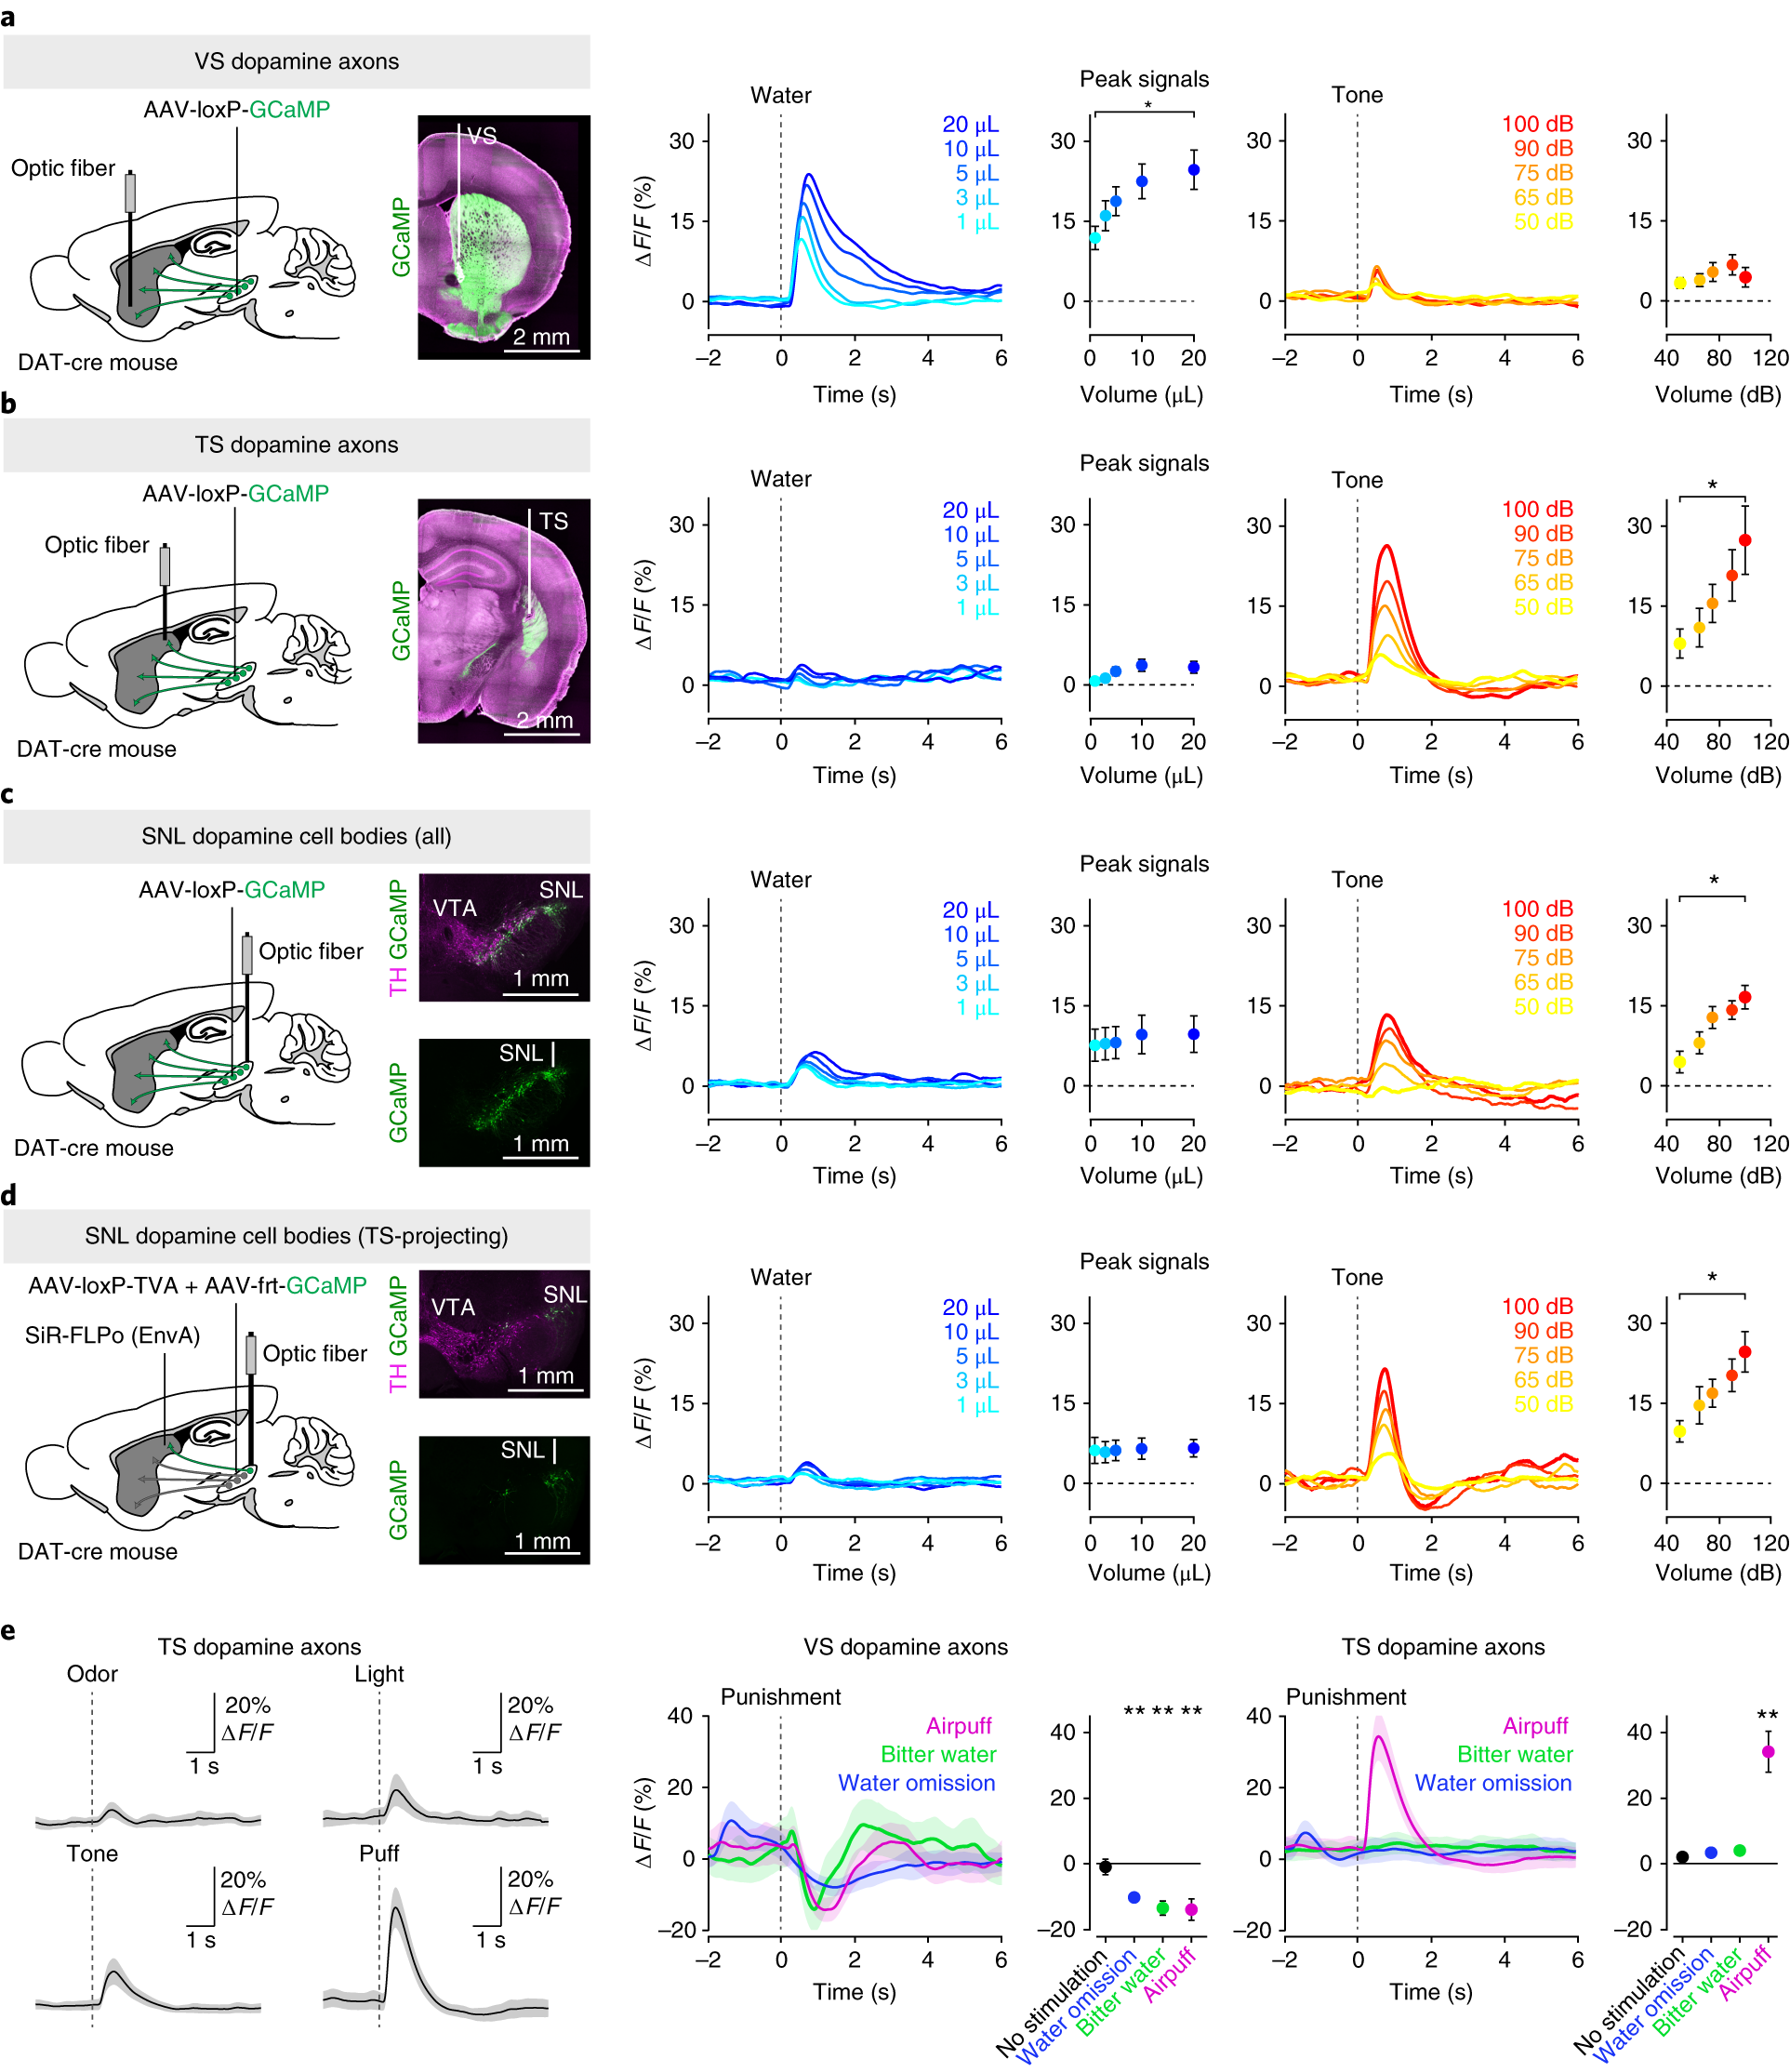 Dopamine Neurons Projecting To The Posterior Striatum Reinforce Conduit Schedule 40 And 80 Pdf Flexible Metal Electrical Avoidance Of Threatening Stimuli Nature Neuroscience